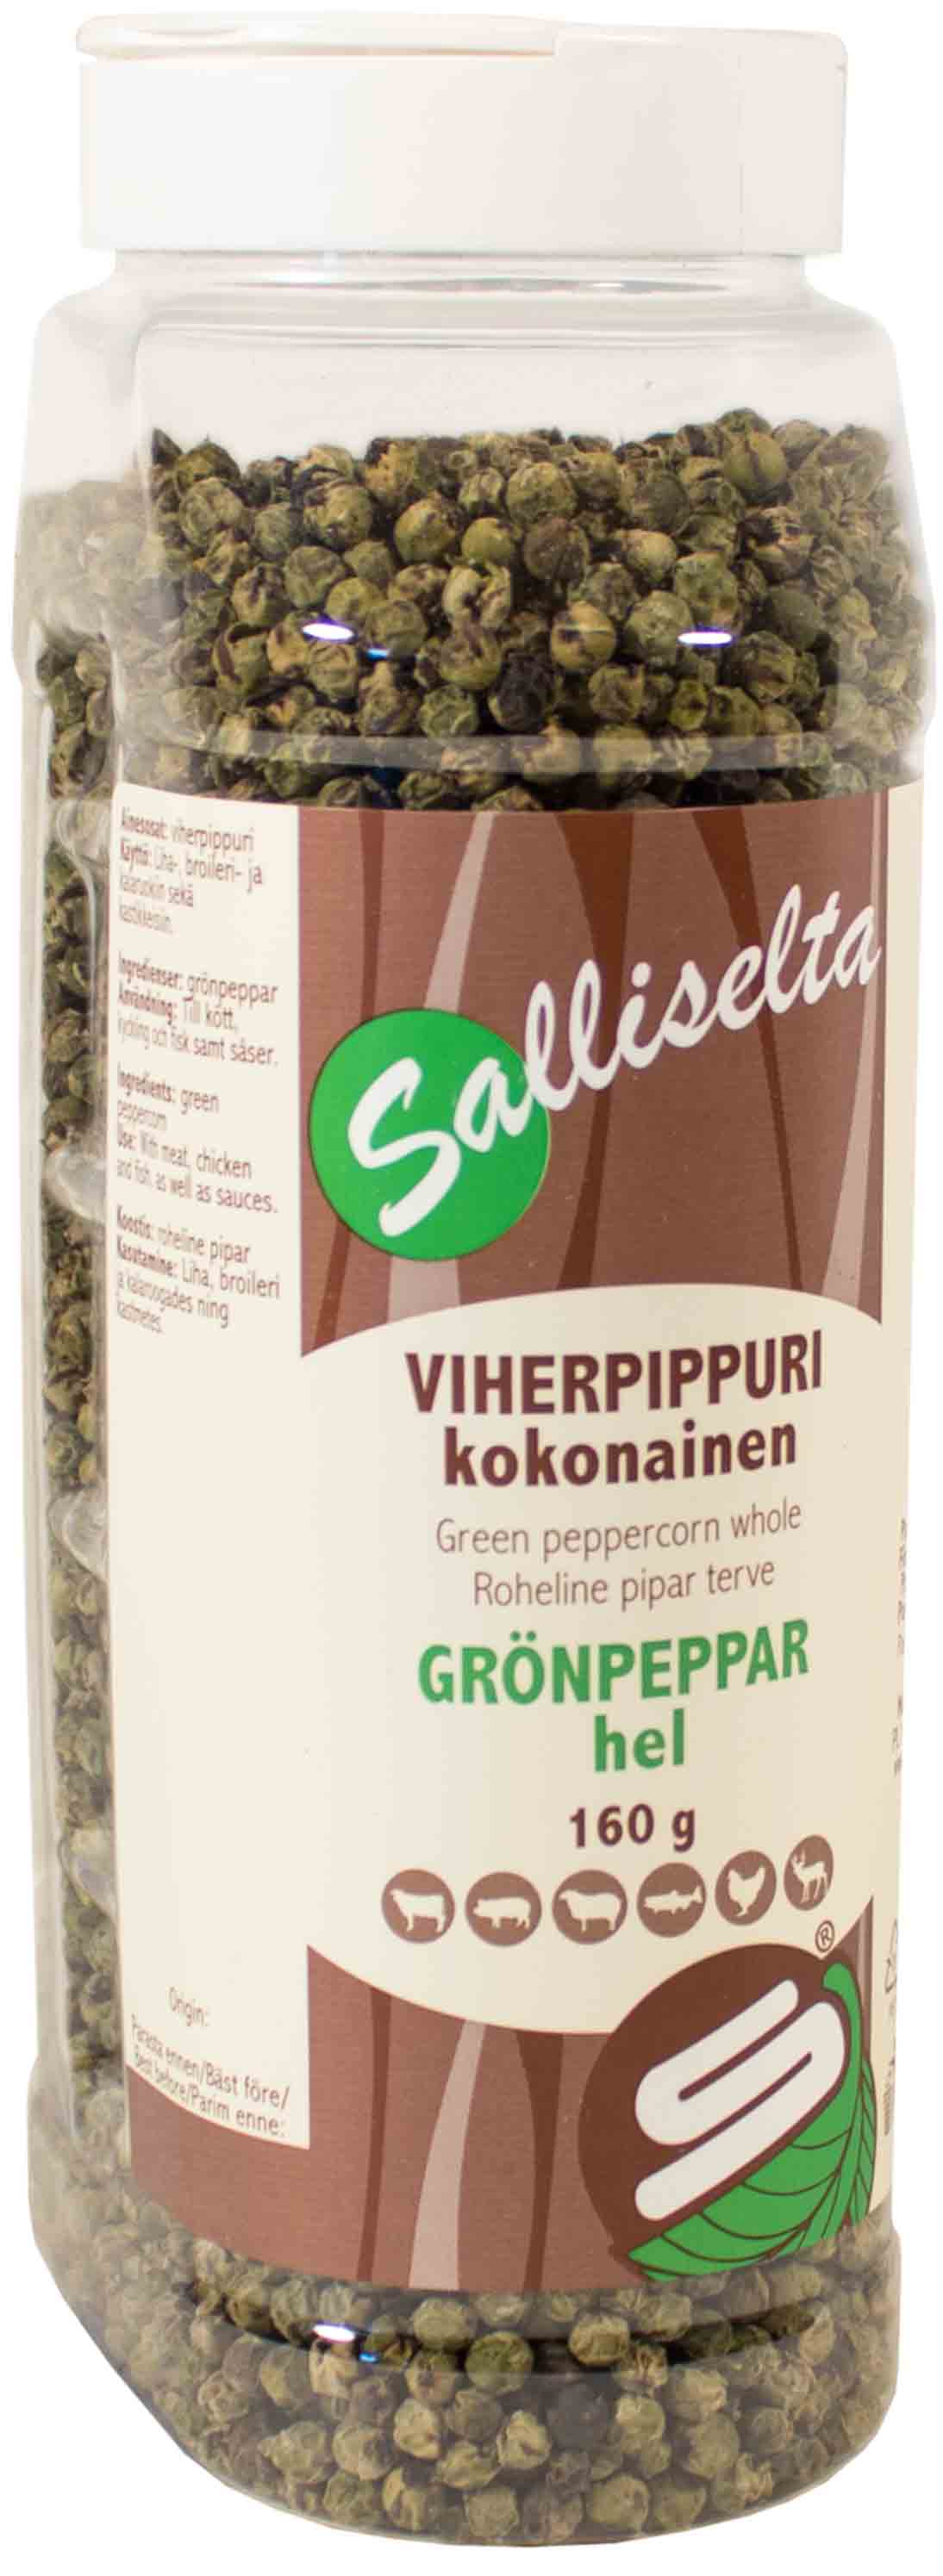 Green peppercorn whole 160g